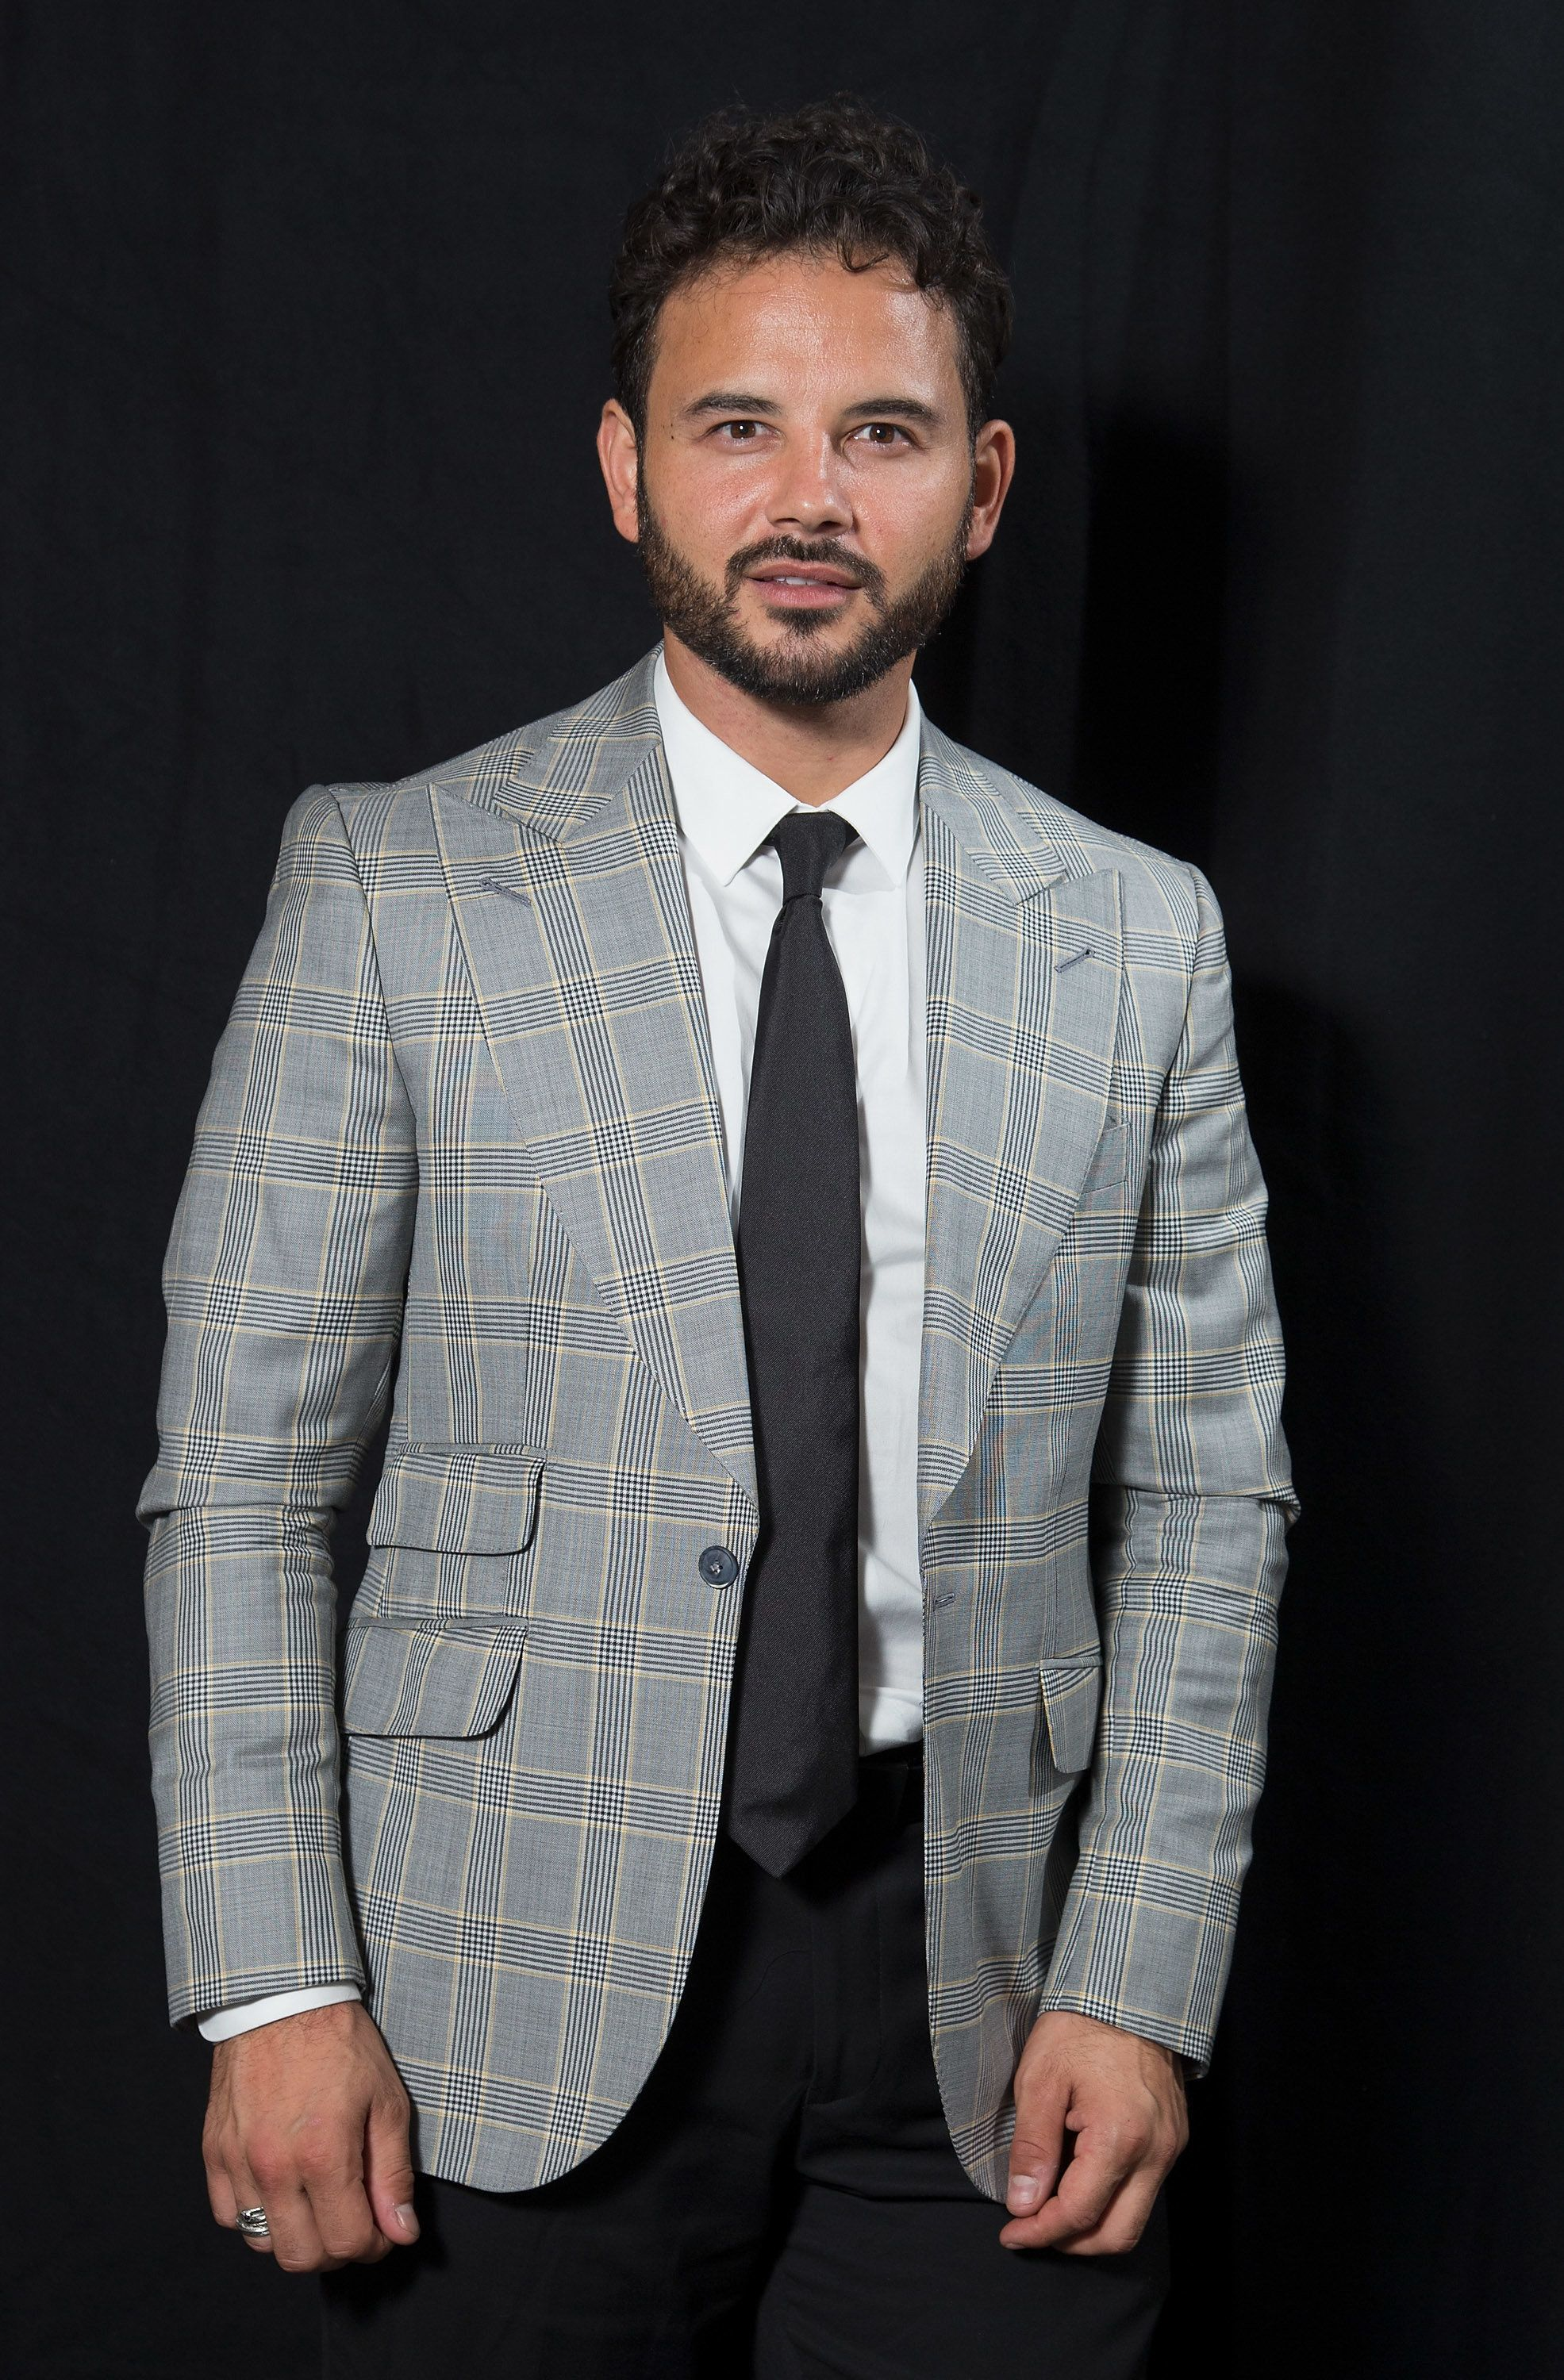 Former 'Coronation Street' Star Ryan Thomas 'Lands Impressive New Soap